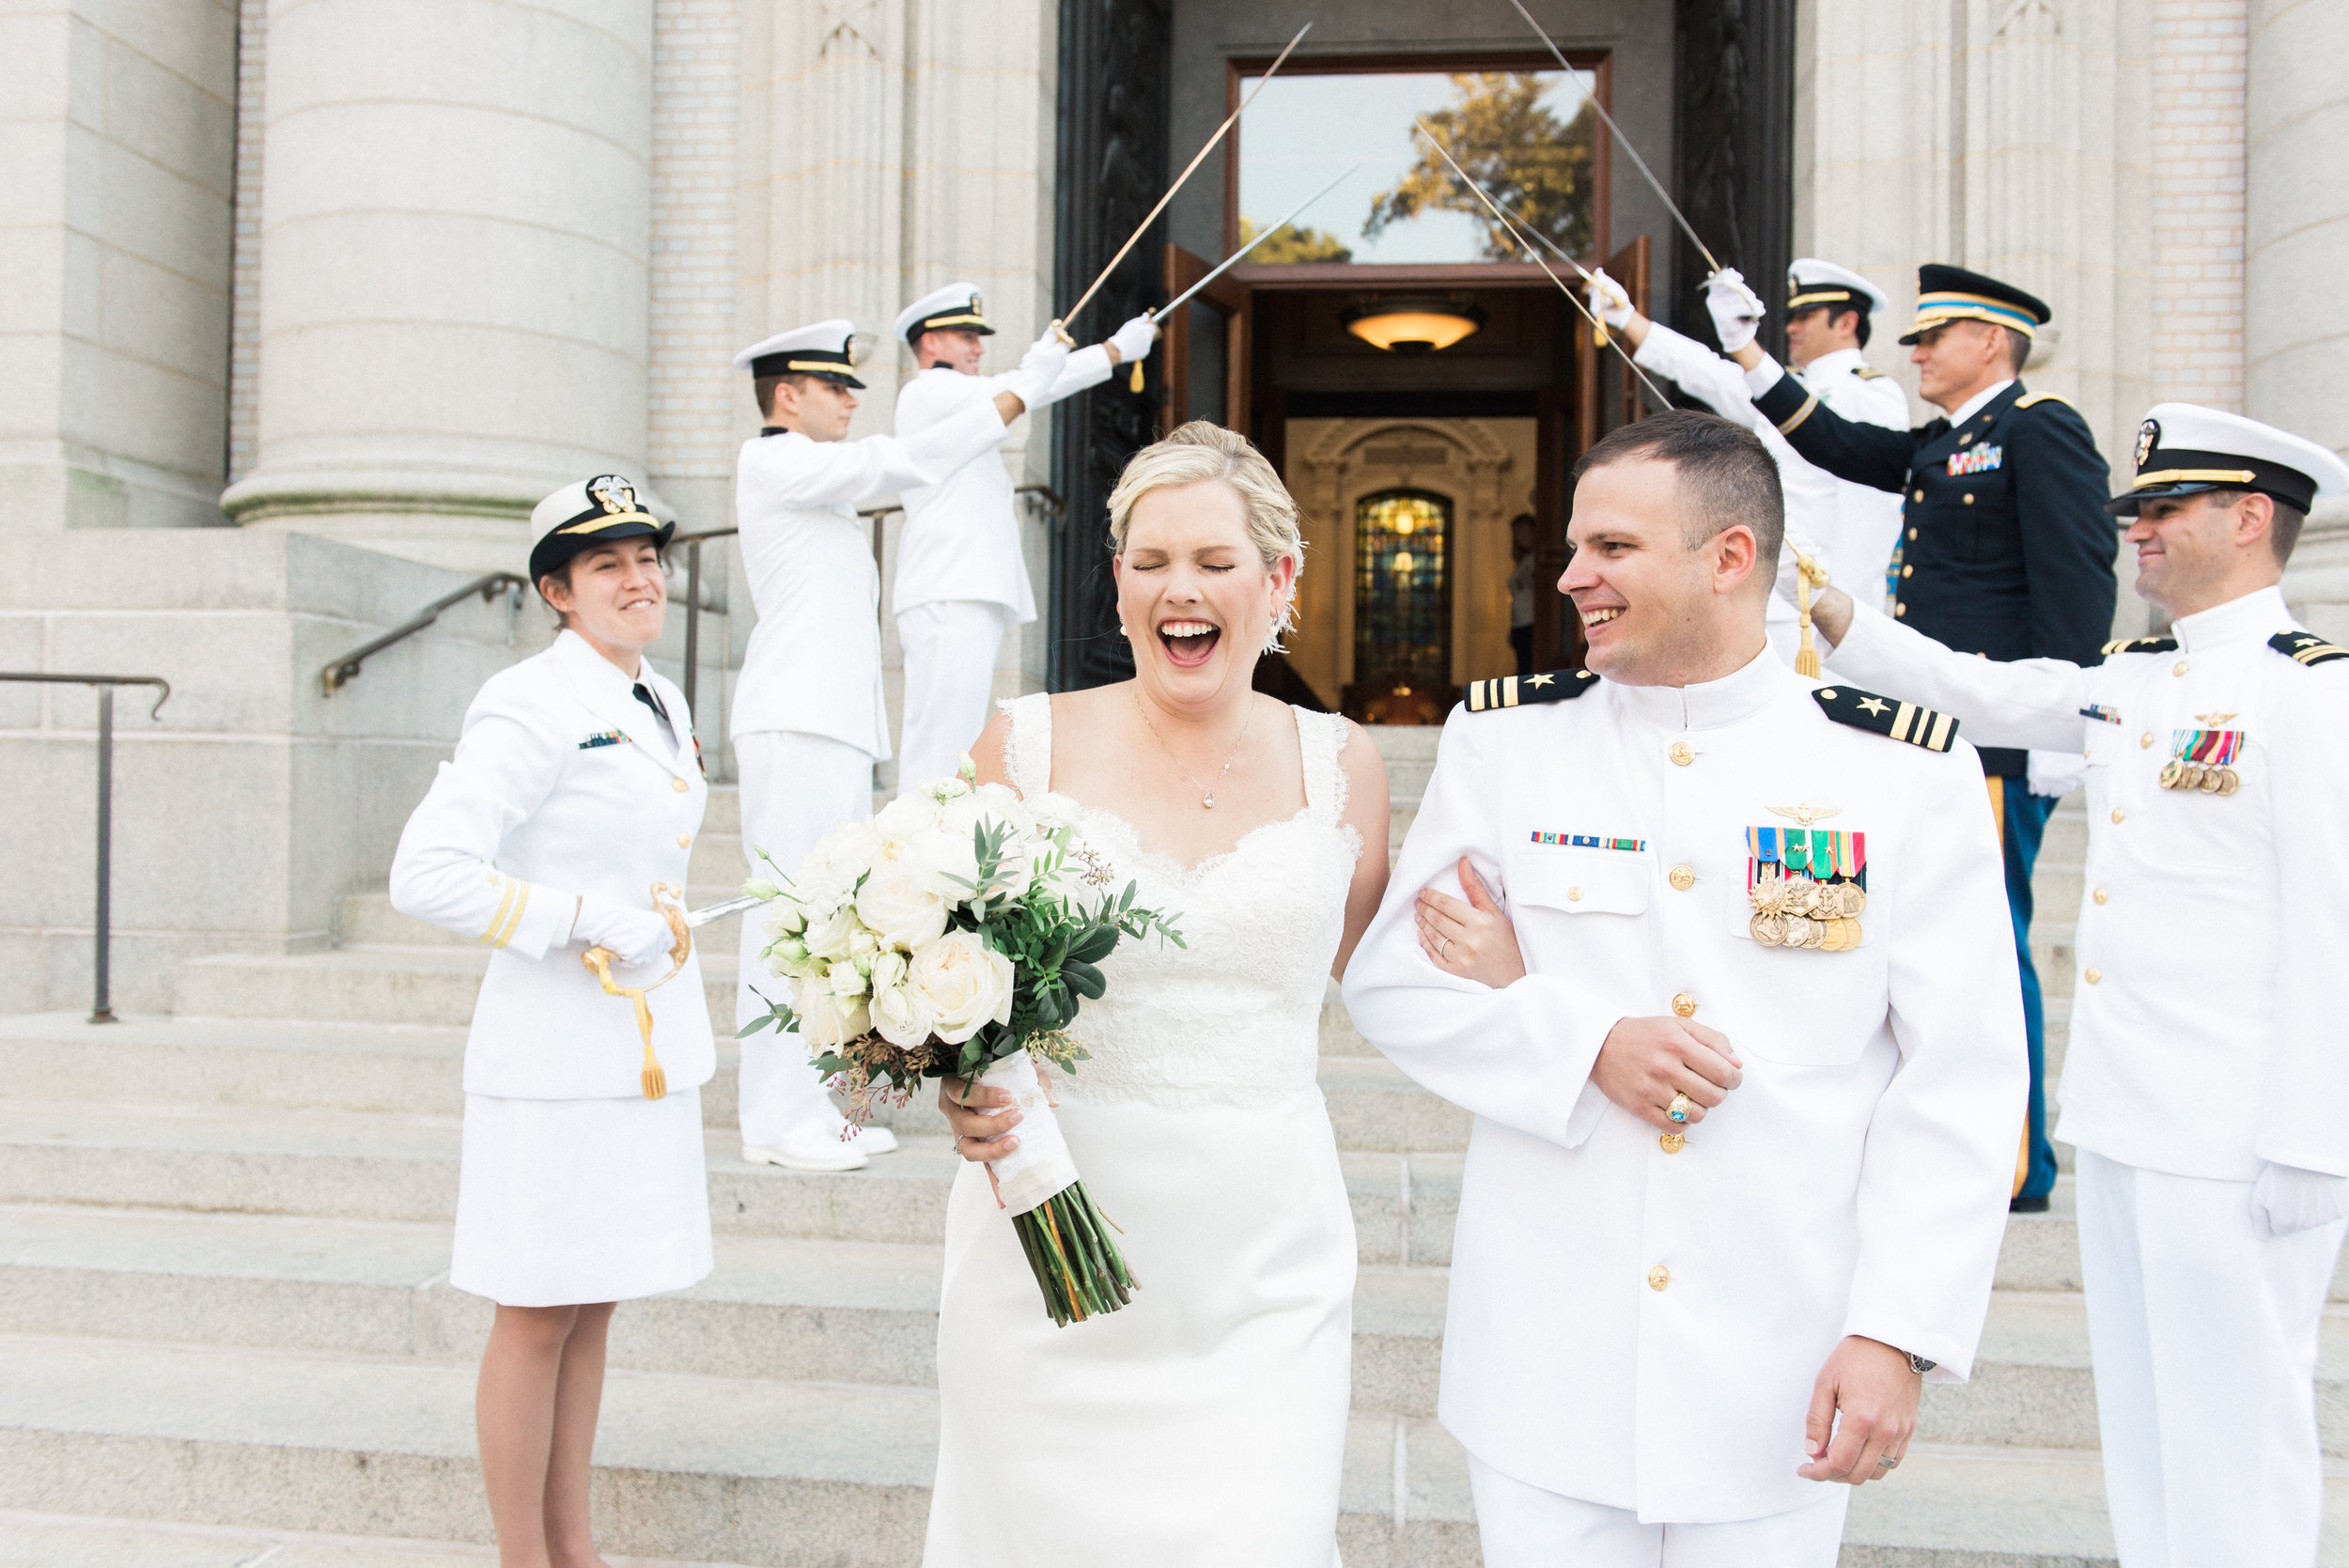 USNA-maritime-wedding-day-jj(146of233).jpg